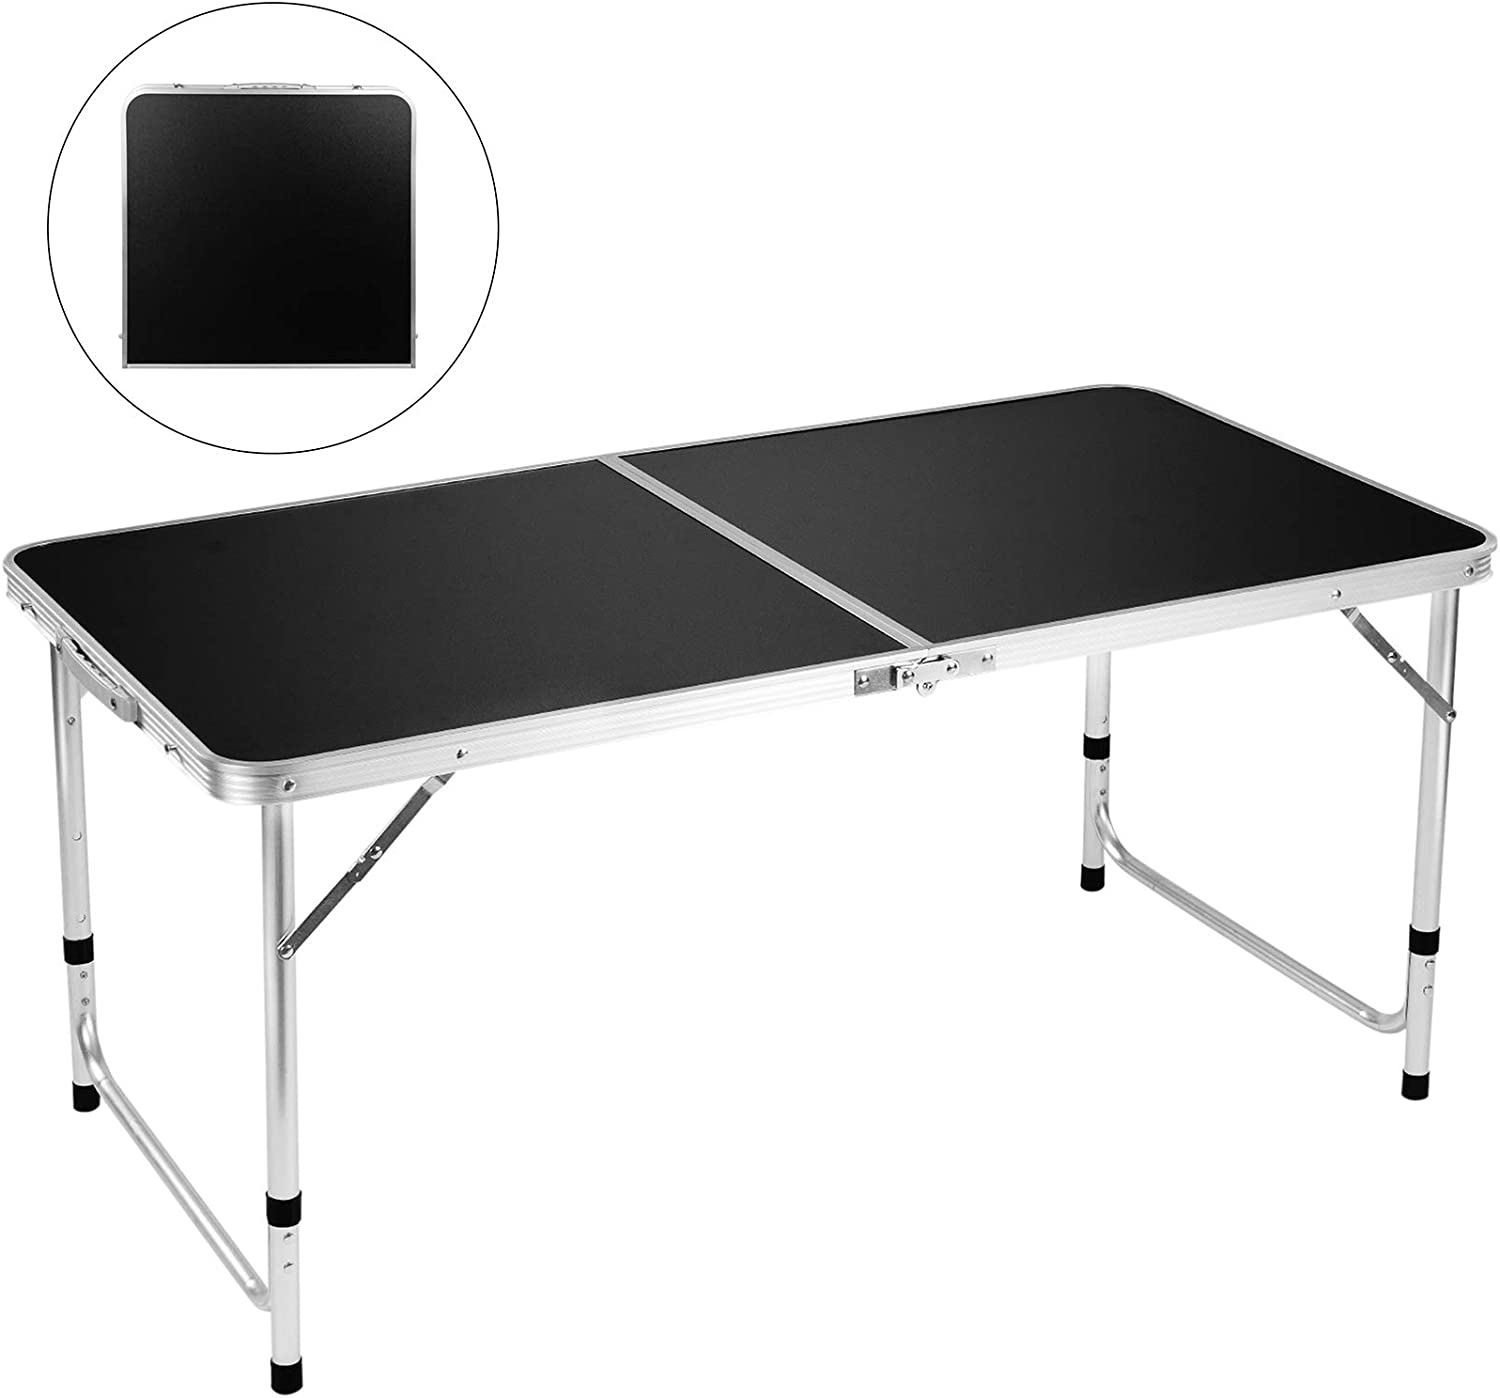 "Folding Camping Table, FiveJoy 4 FT Aluminum Height Adjustable Lightweight Desk/w Portable Handle, Roll Up Top Weatherproof and Rust Resistant Table for Outdoor Picnic Beach Backyard, 47"" x 24"", Black: Kitchen & Dining"